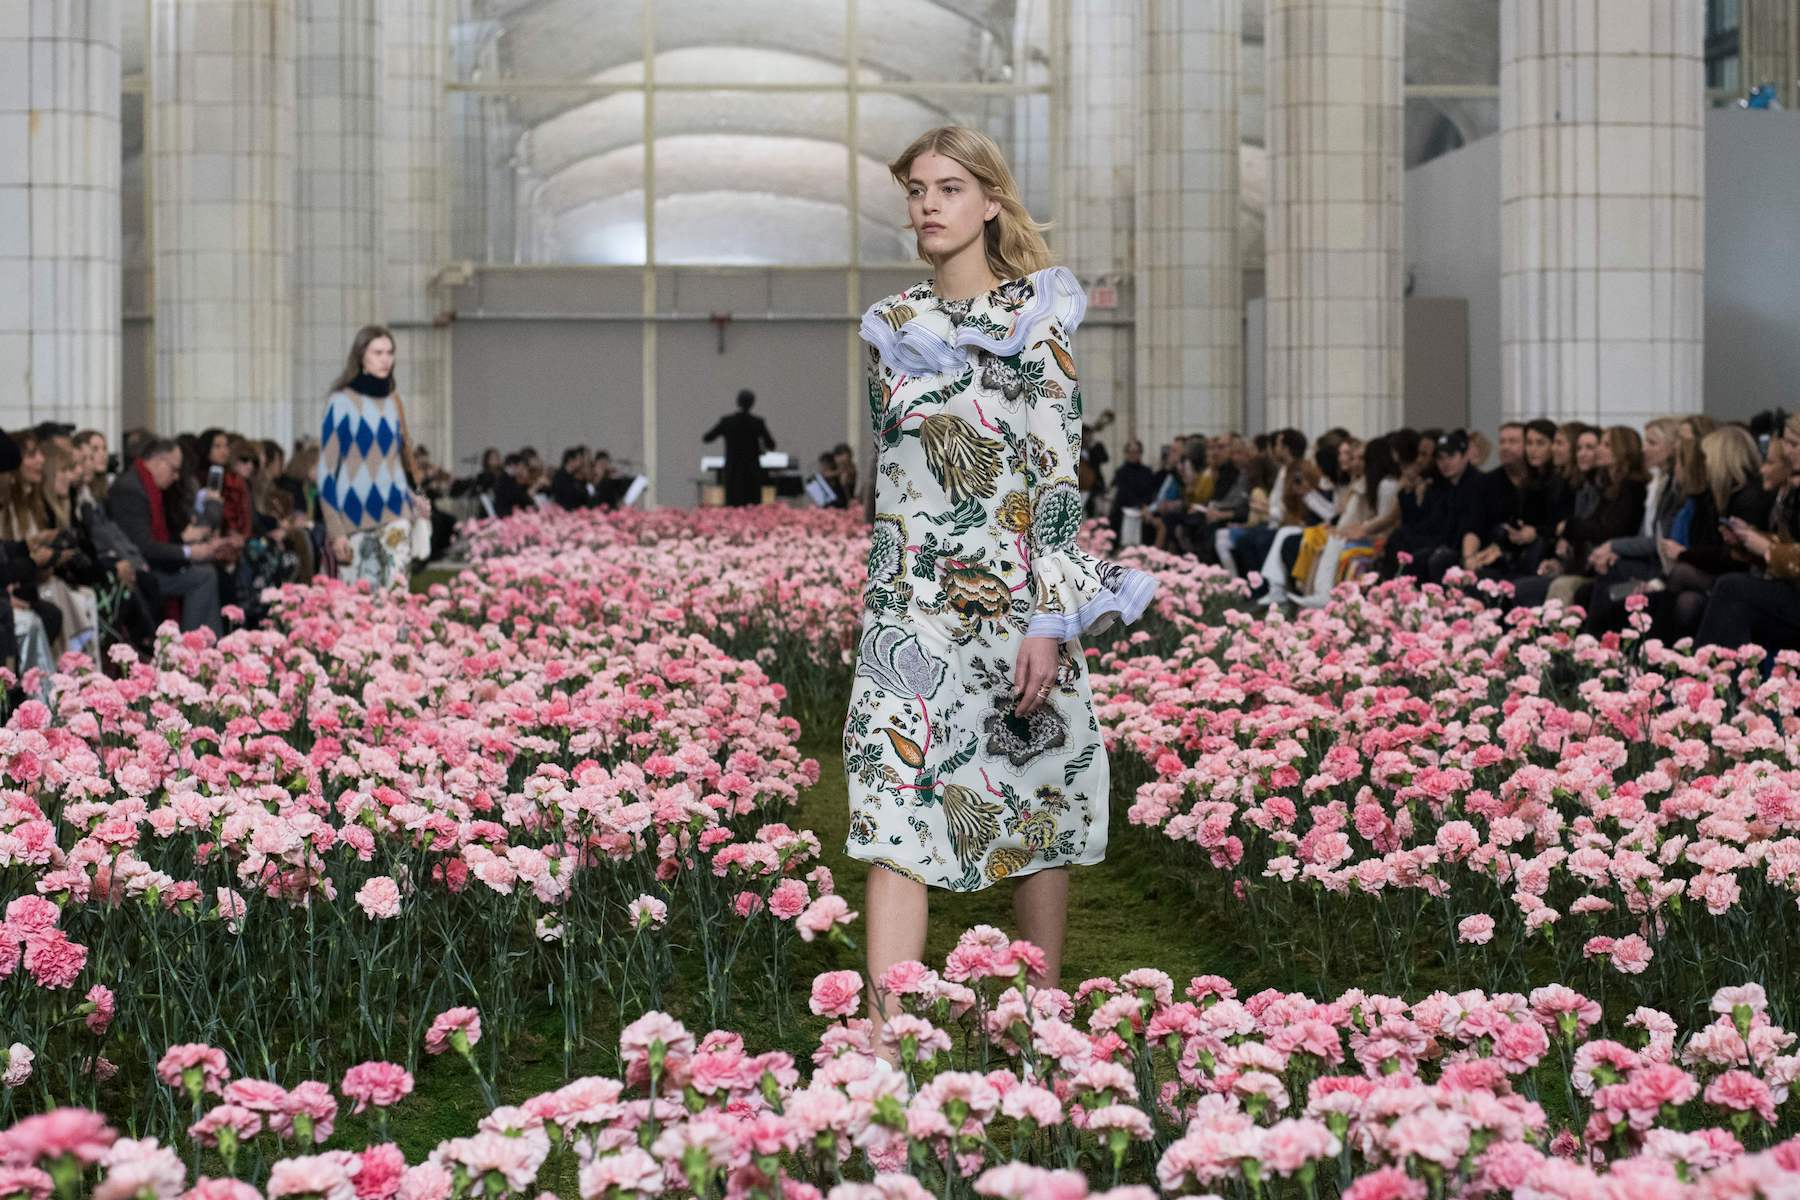 Tory Burch Carnations at runway show